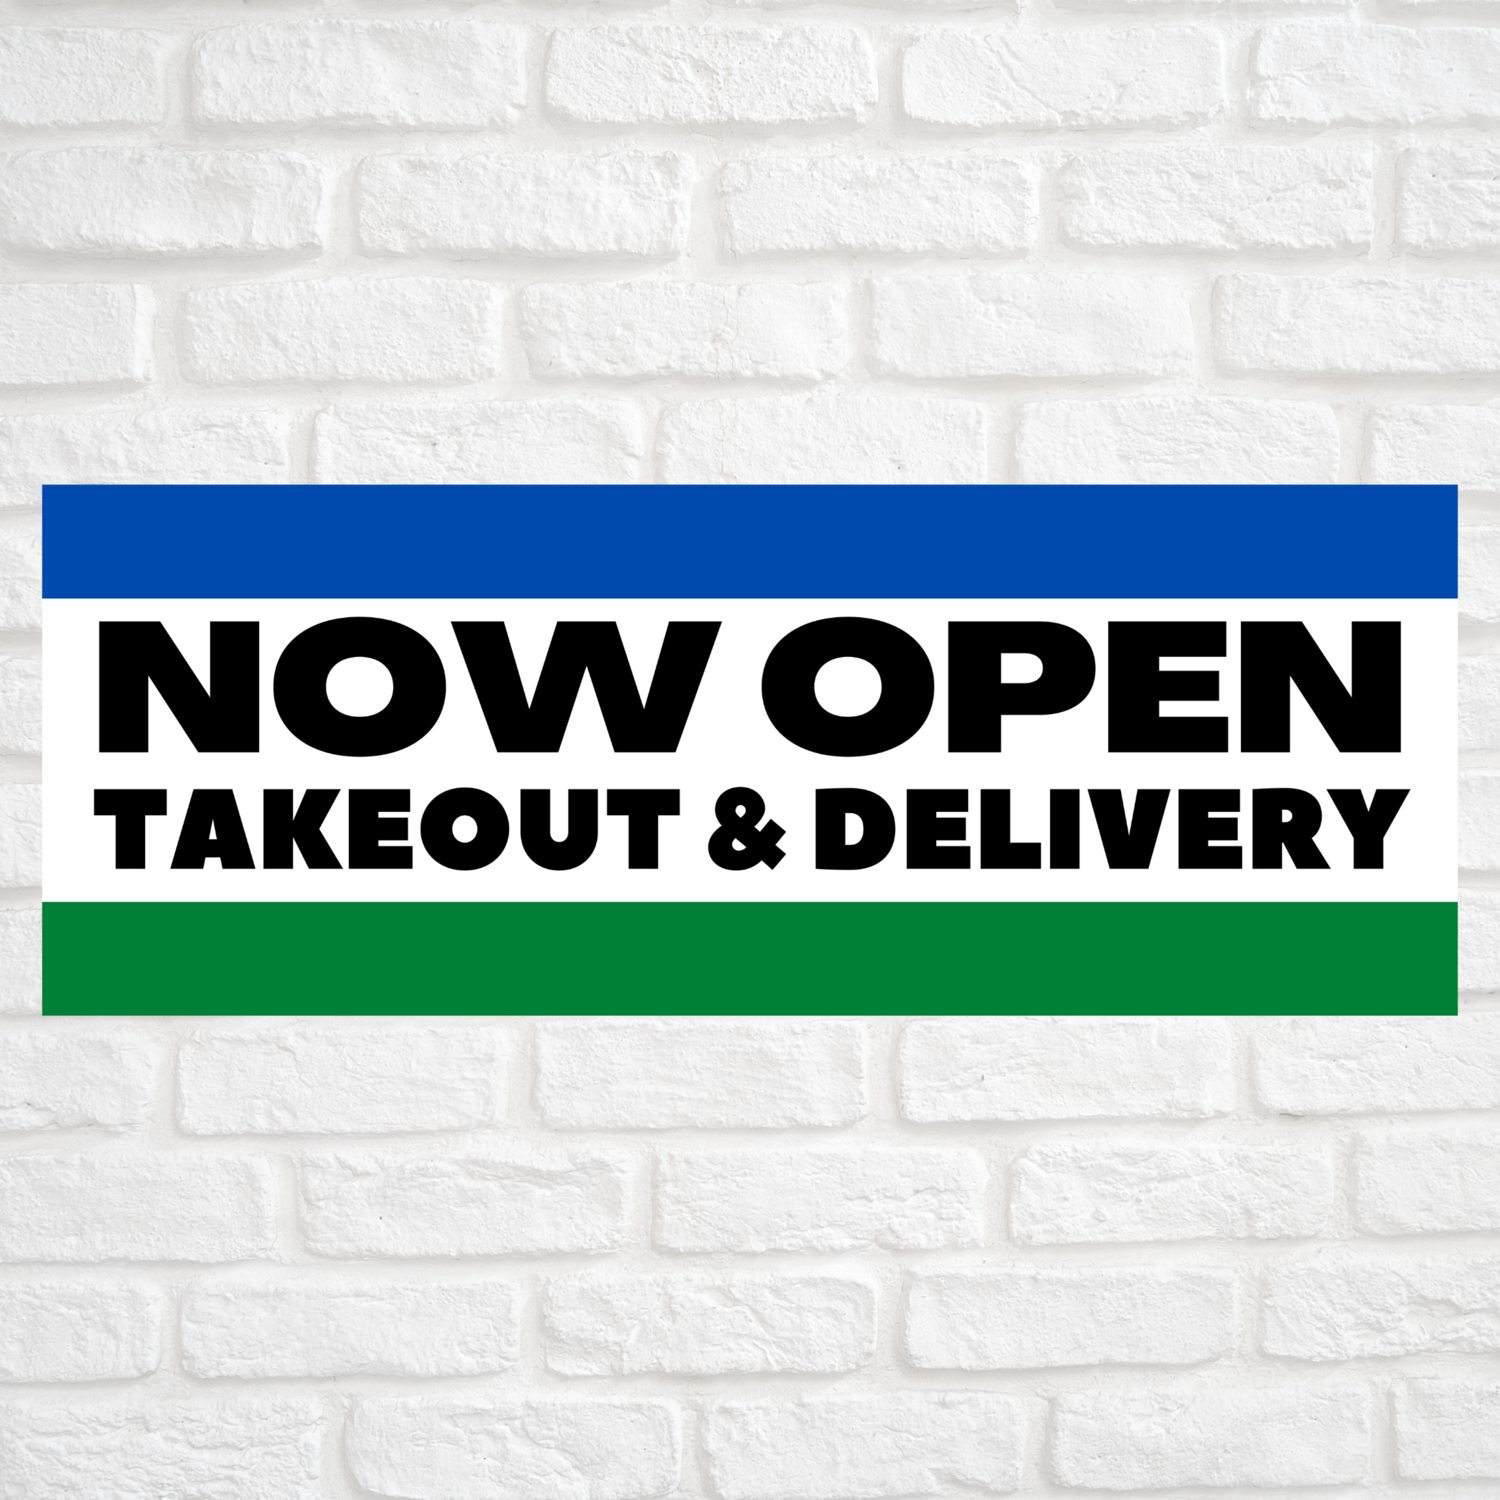 Now Open Takeout & Delivery Blue/Green